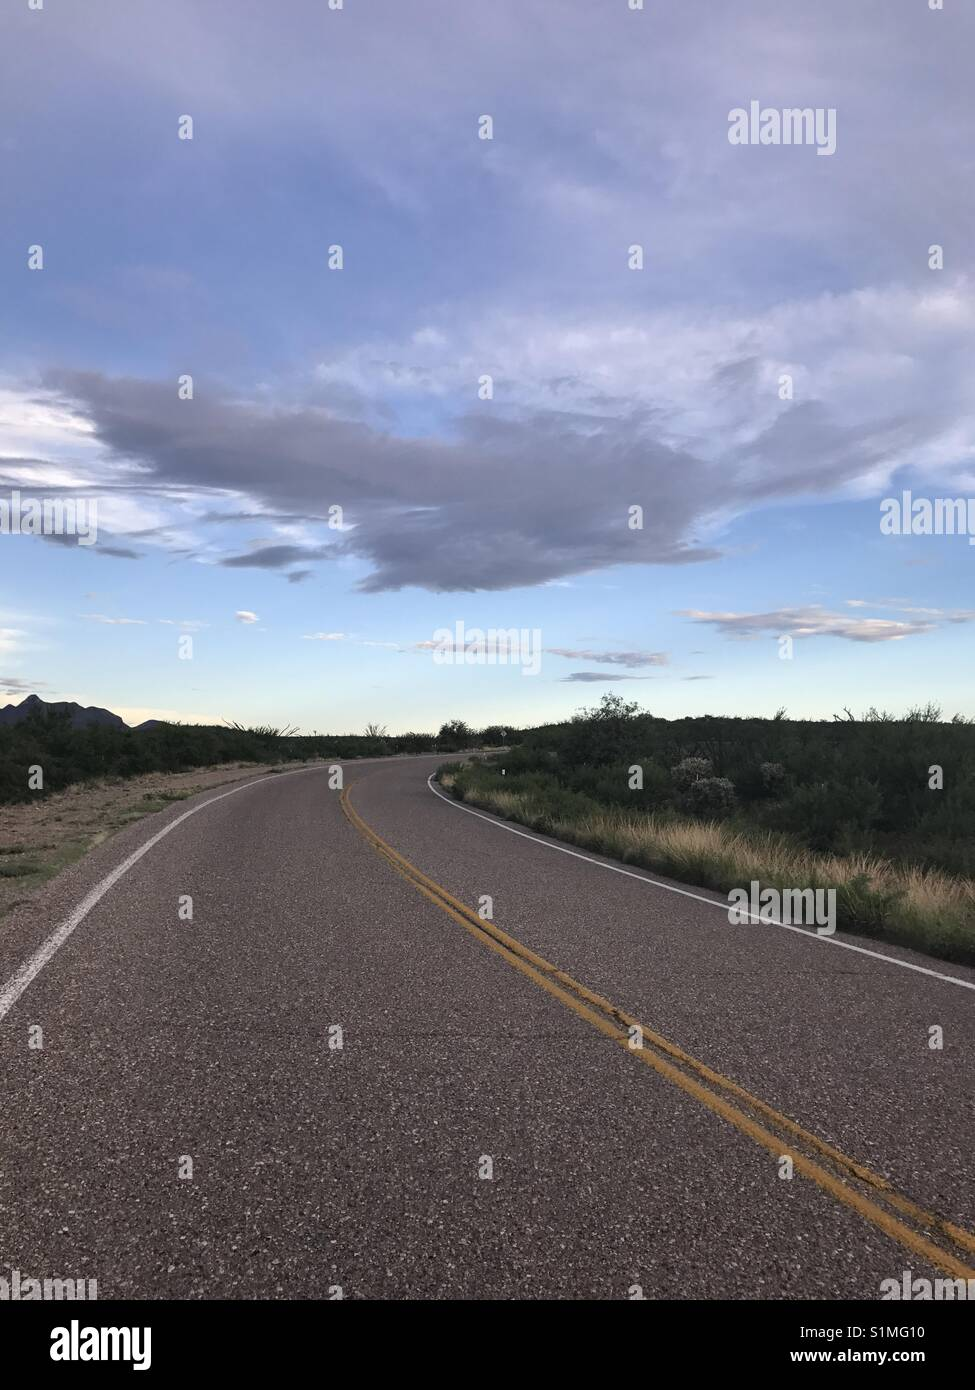 Road leading into the distance with beautiful clouds - Stock Image